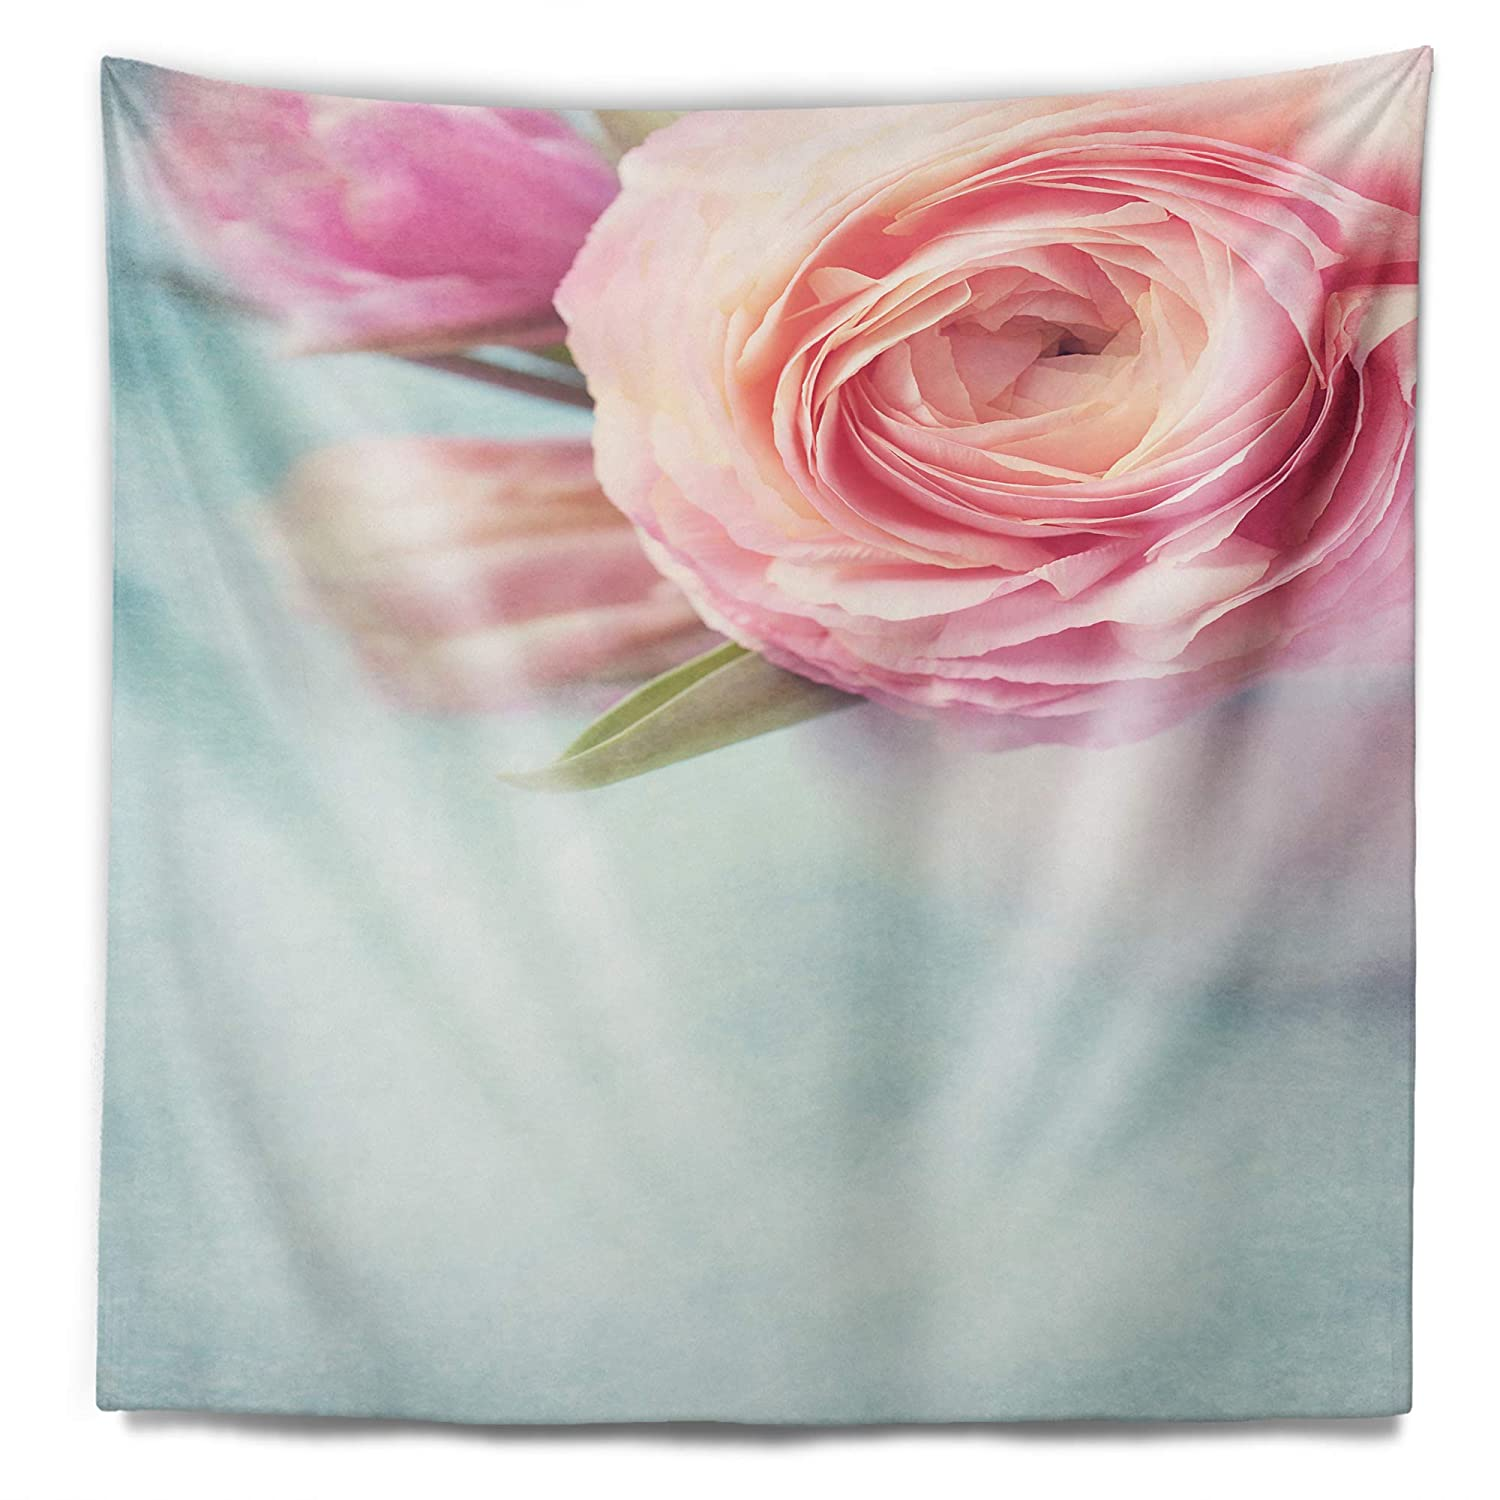 In X 39 In Designart Tap14218 32 39 Full Bloom Pink Flowers In Vase Floral Blanket Décor Art For Home And Office Wall Tapestry Medium 32 In